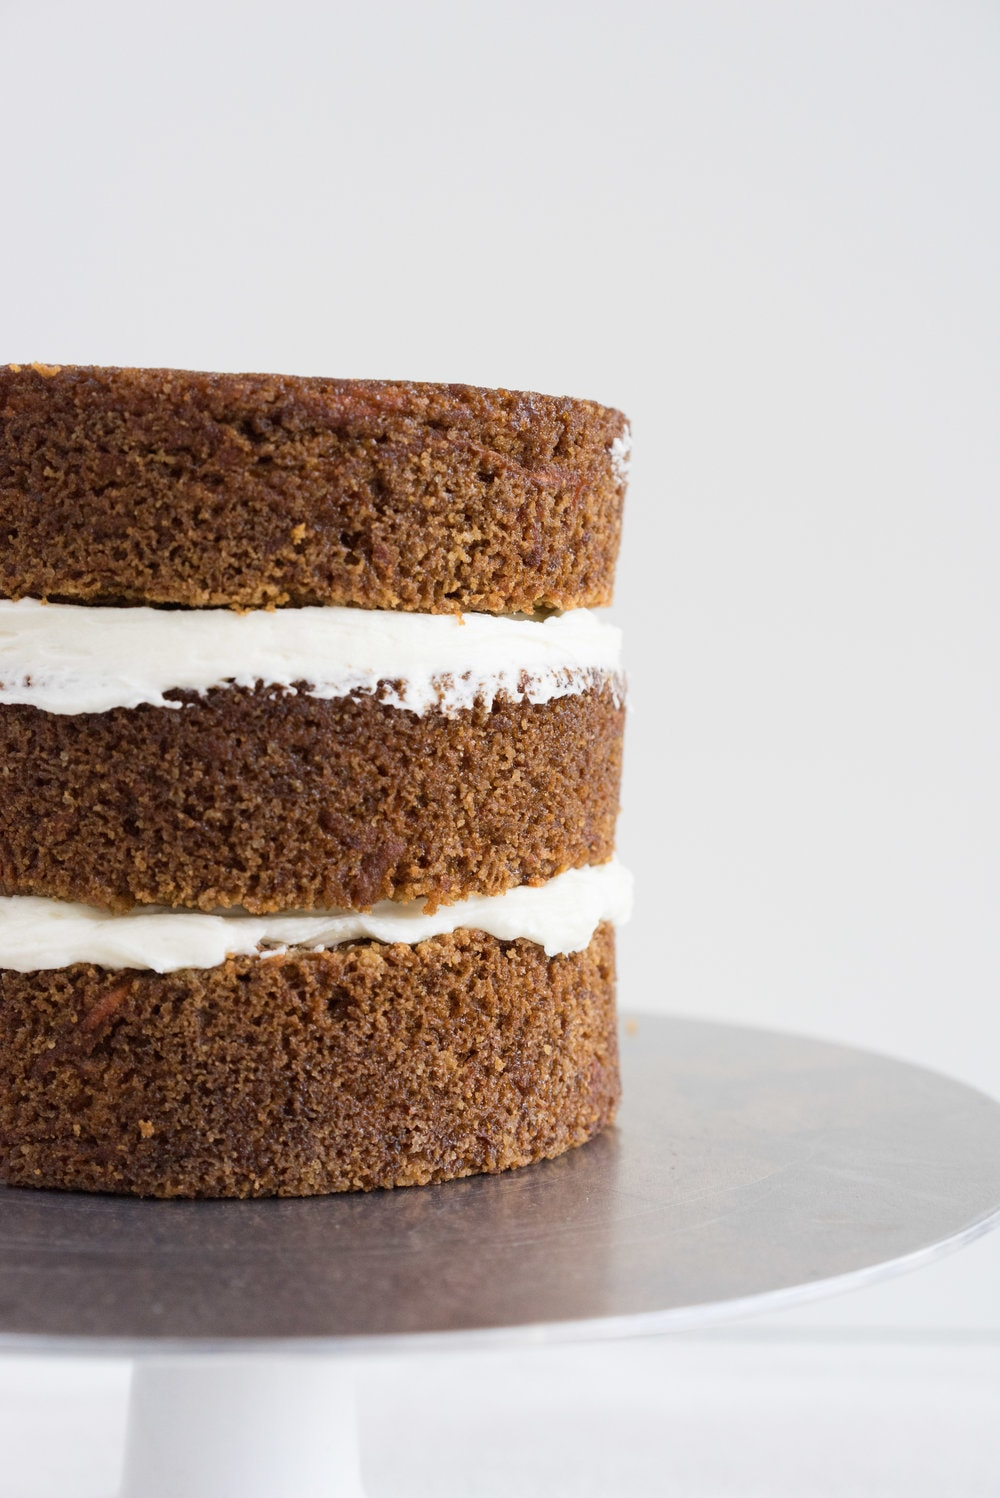 Carrot Cake with cream cheese icing that is super easy to pipe. The cake is moist and flavourful, and the icing has the perfect amount of sweetness and cream cheese punch.